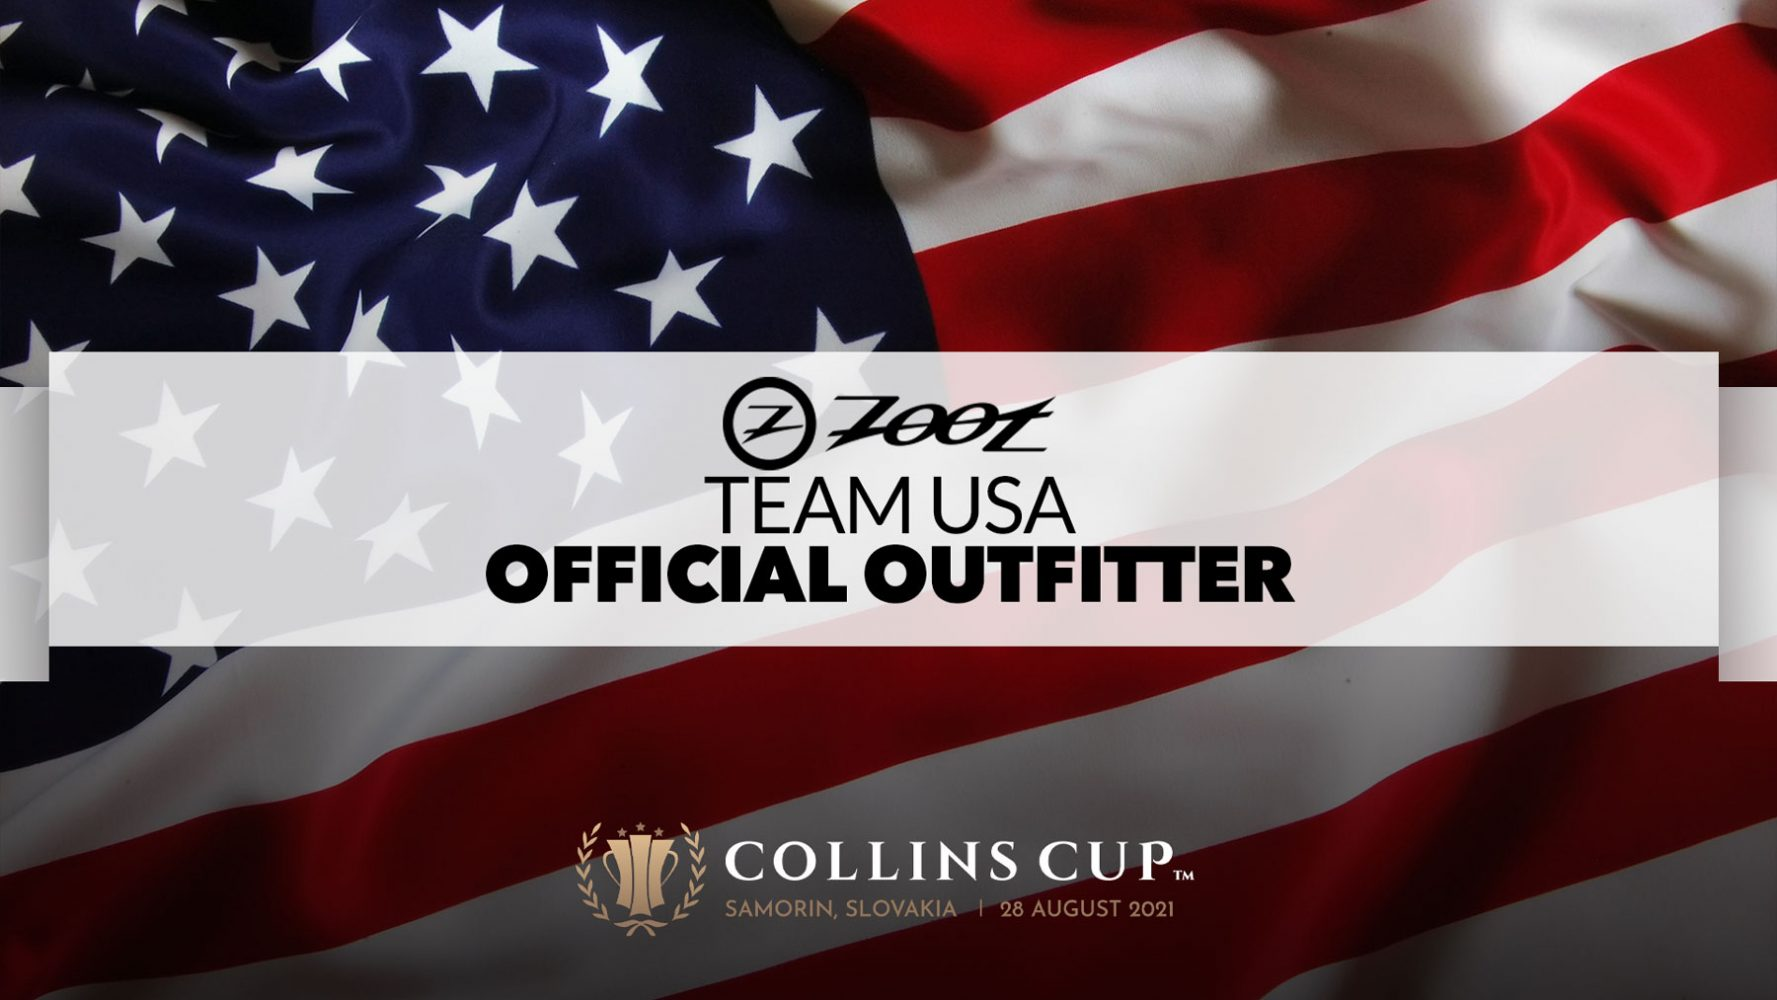 Zoot - Collins Cup Team USA Outfitter